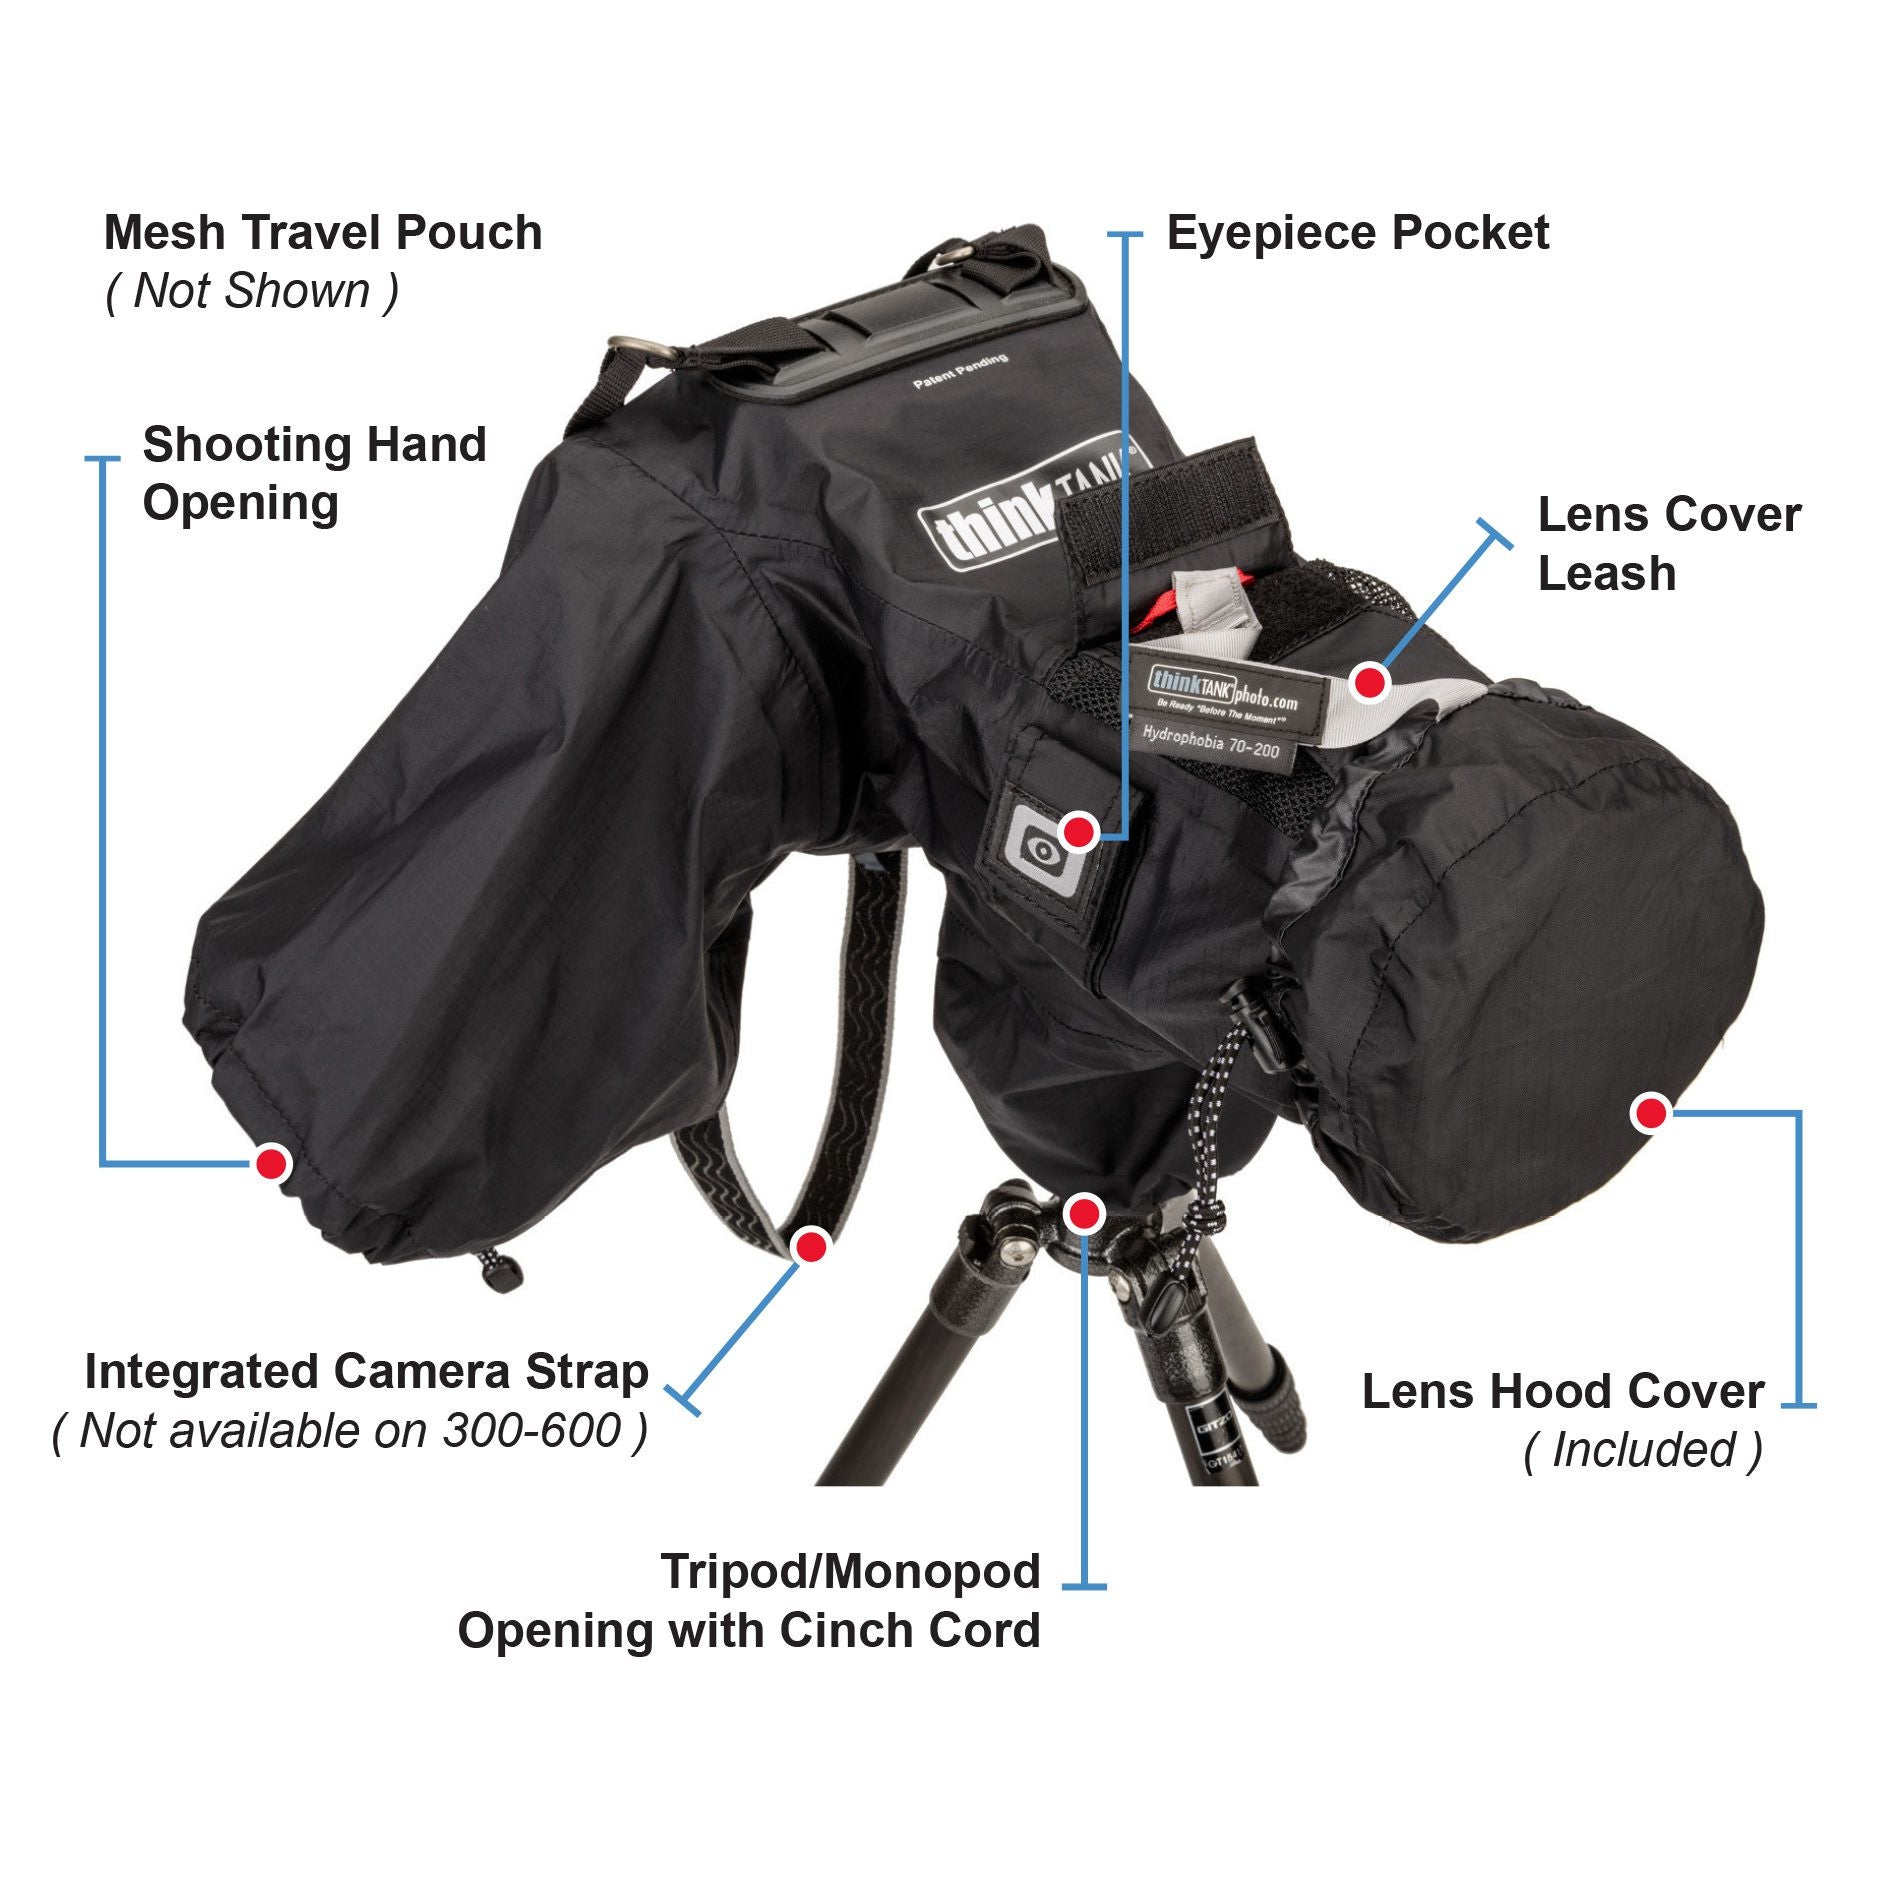 Camera Dslr Camera Info for dslr cameras keeps your gear dry and magnify